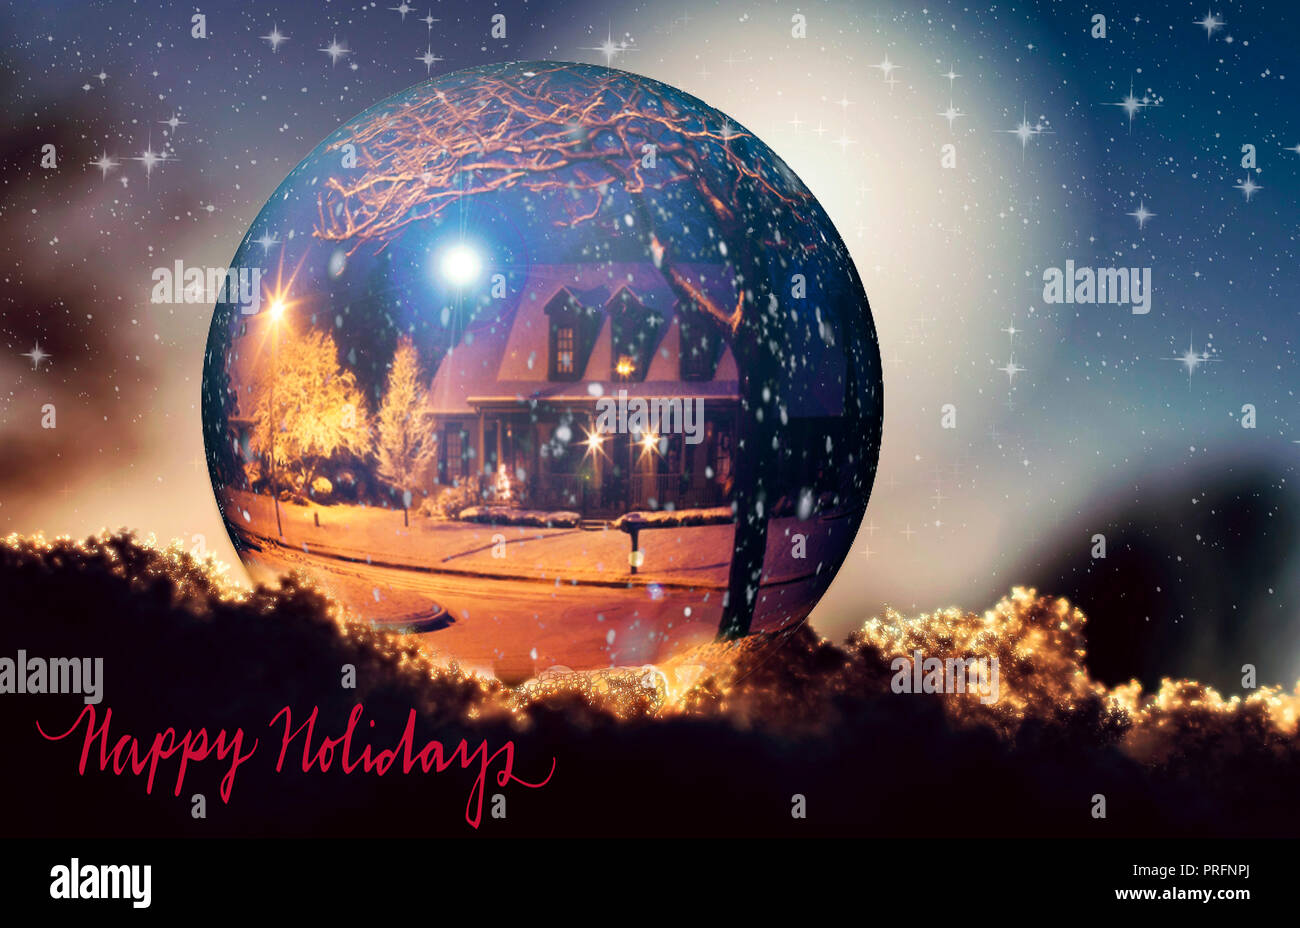 A Beautiful Christmas Card In A Vintage Style With A Big Ball And A